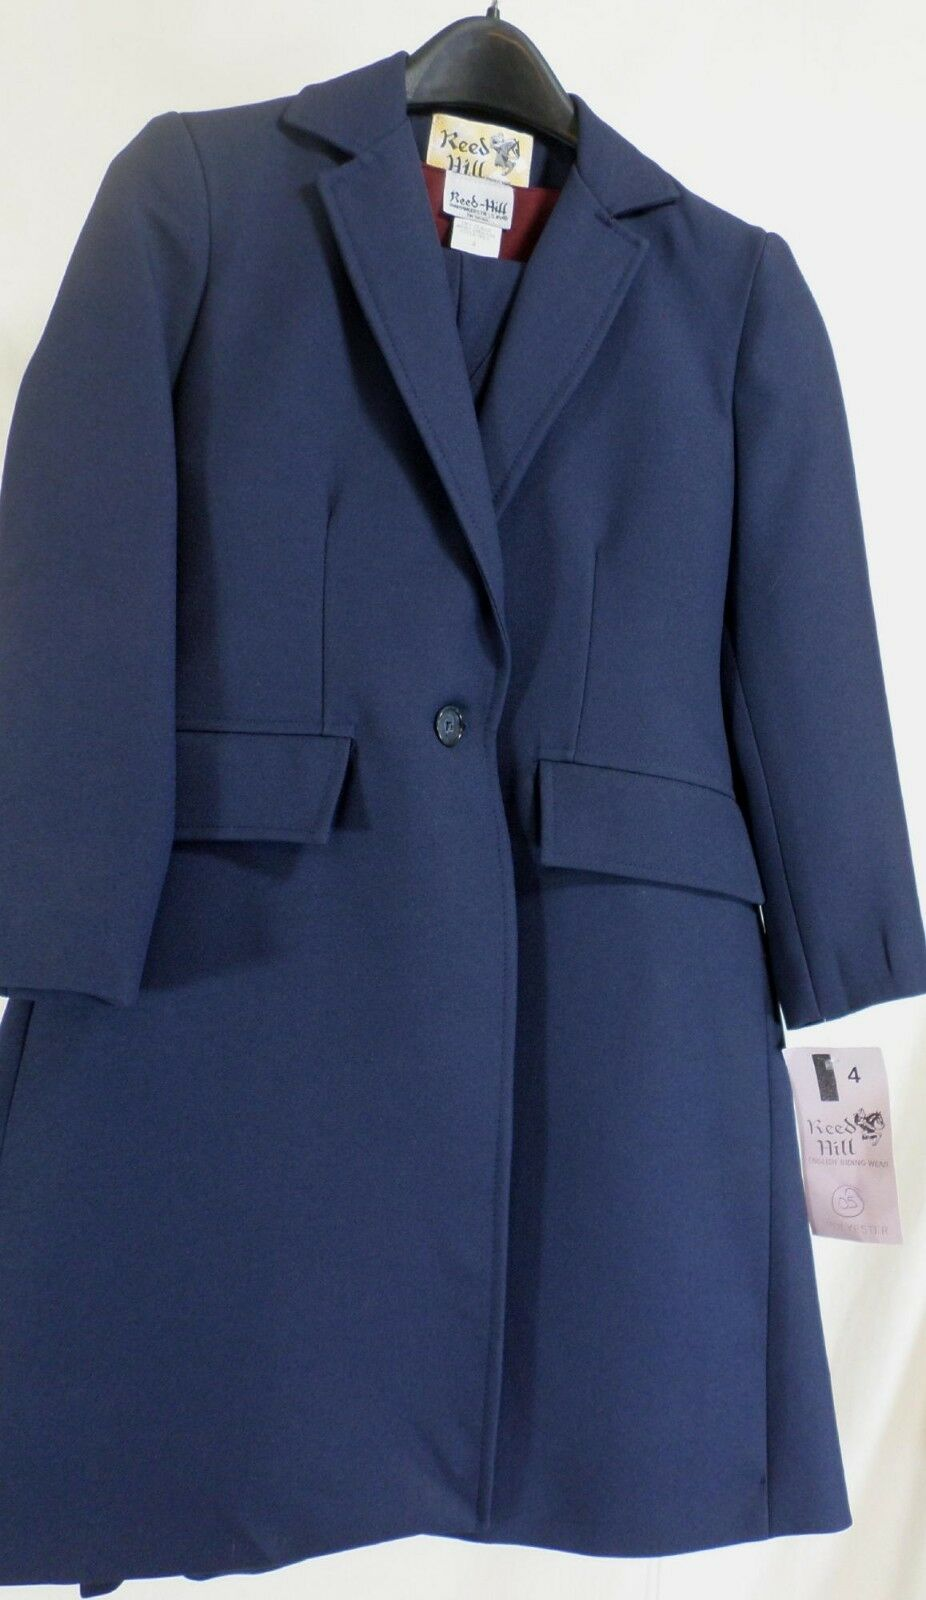 Reed Hill Saddleseat  lds 3pc suit Navy  poly size 4 - USA  more discount